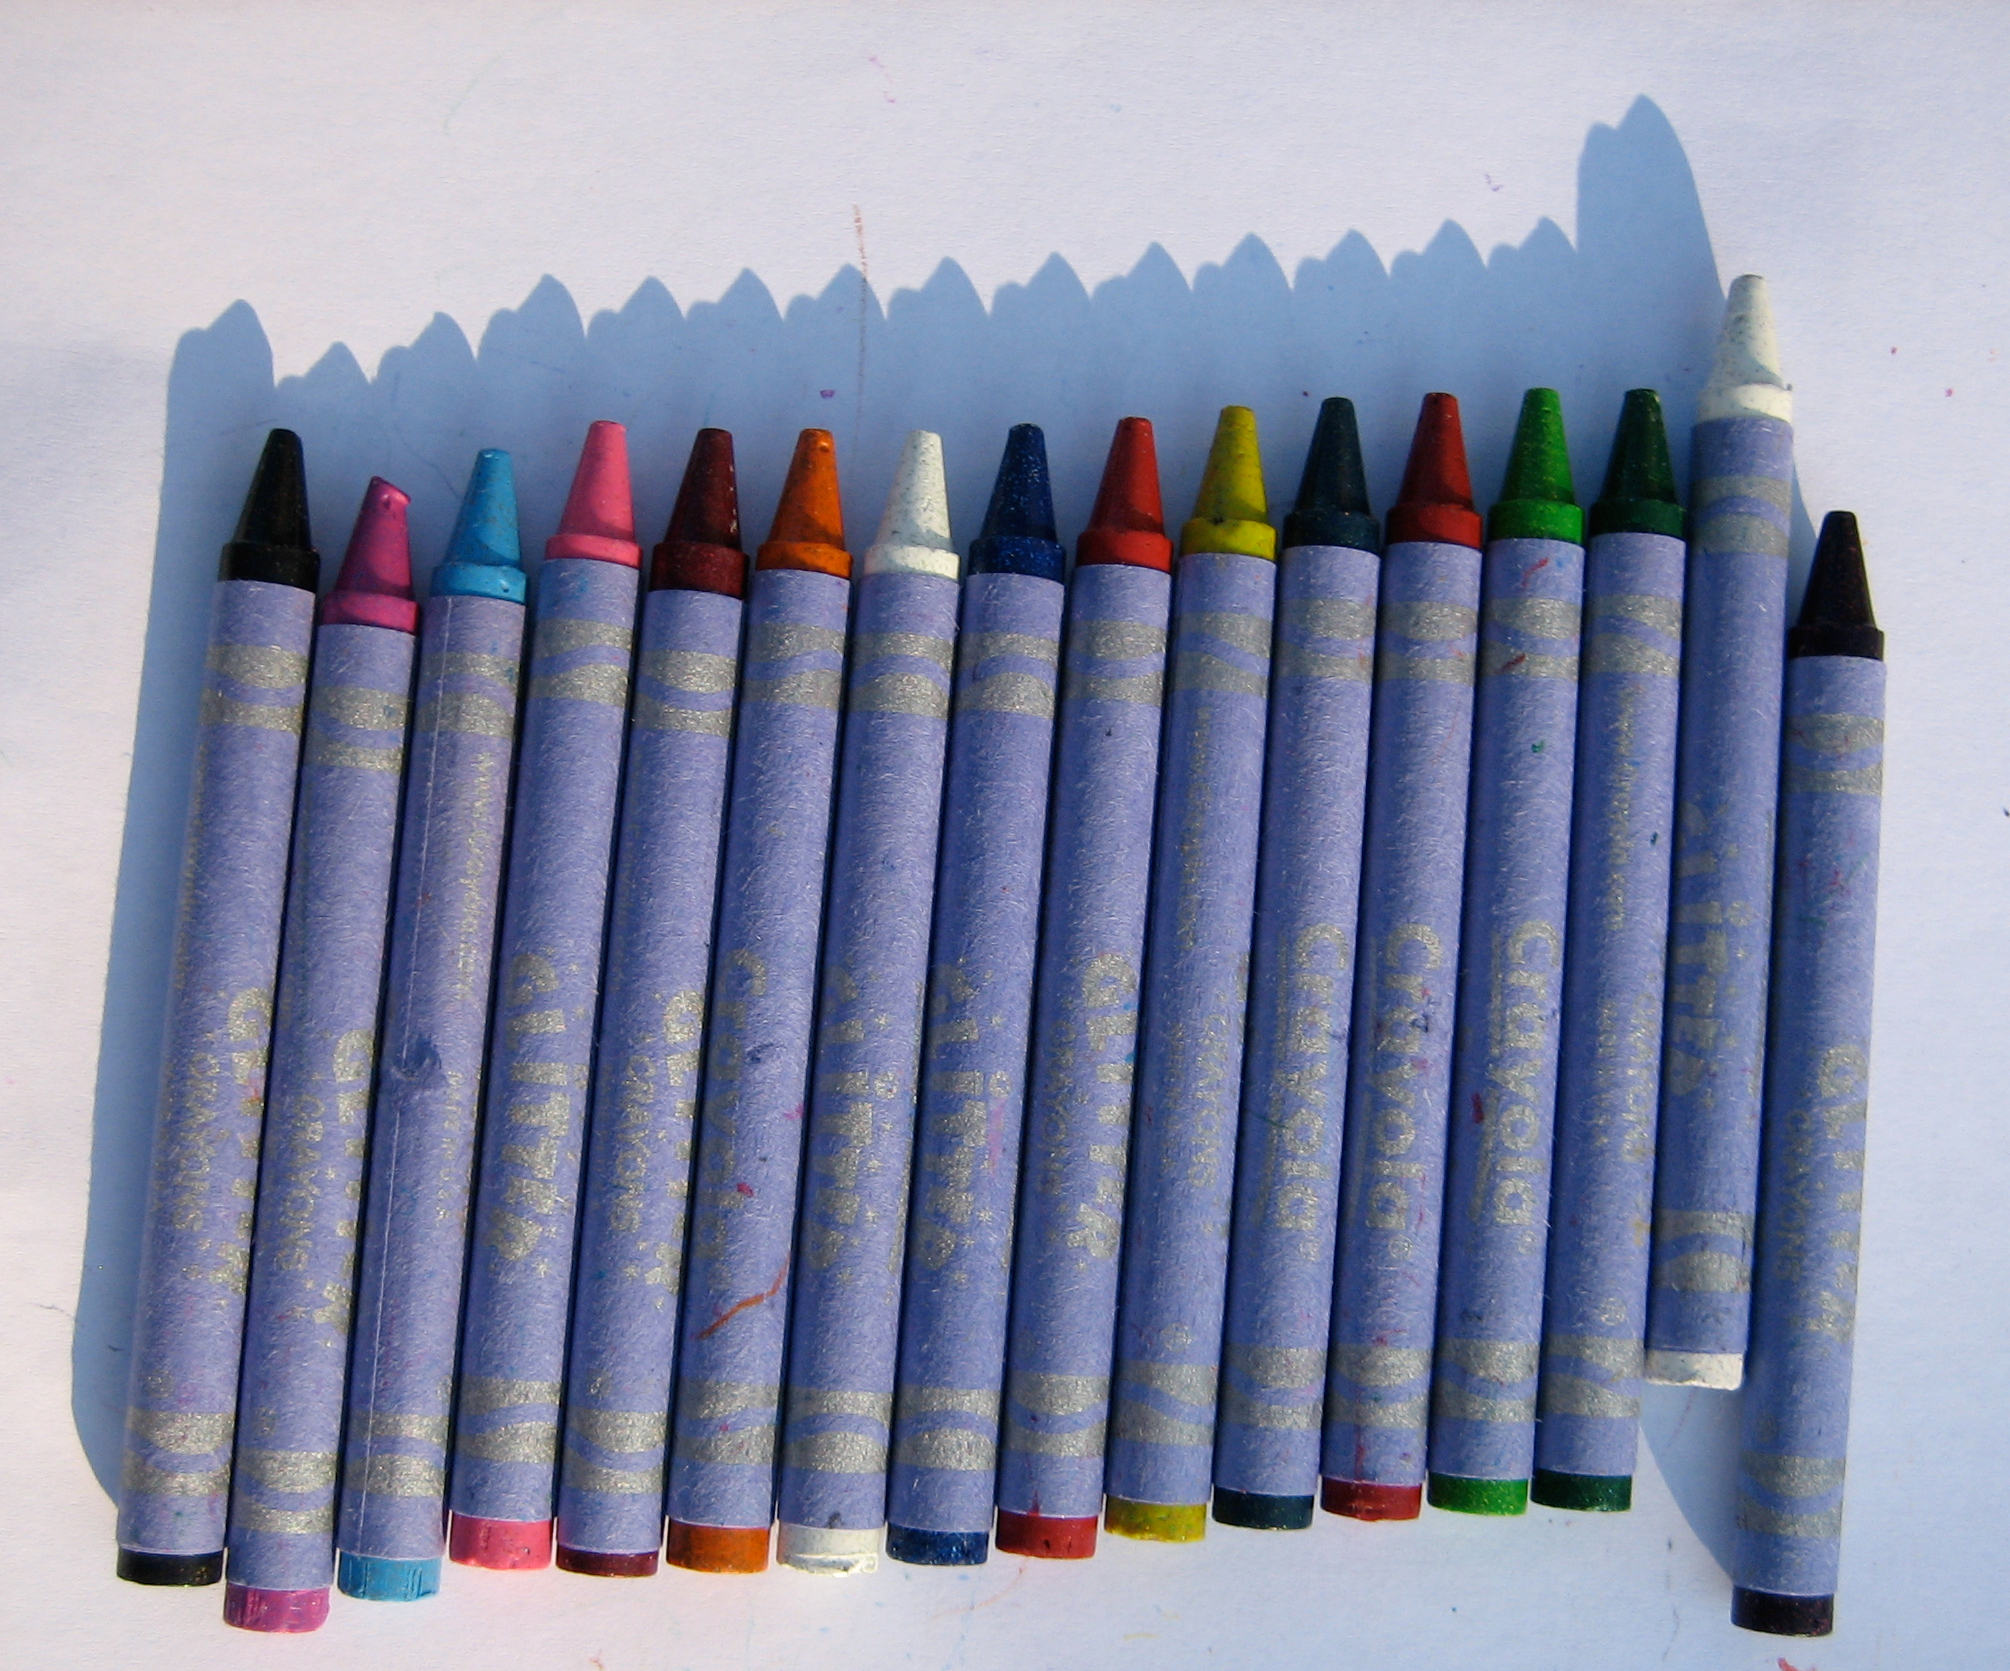 Crayon  Simple English Wikipedia the free encyclopedia